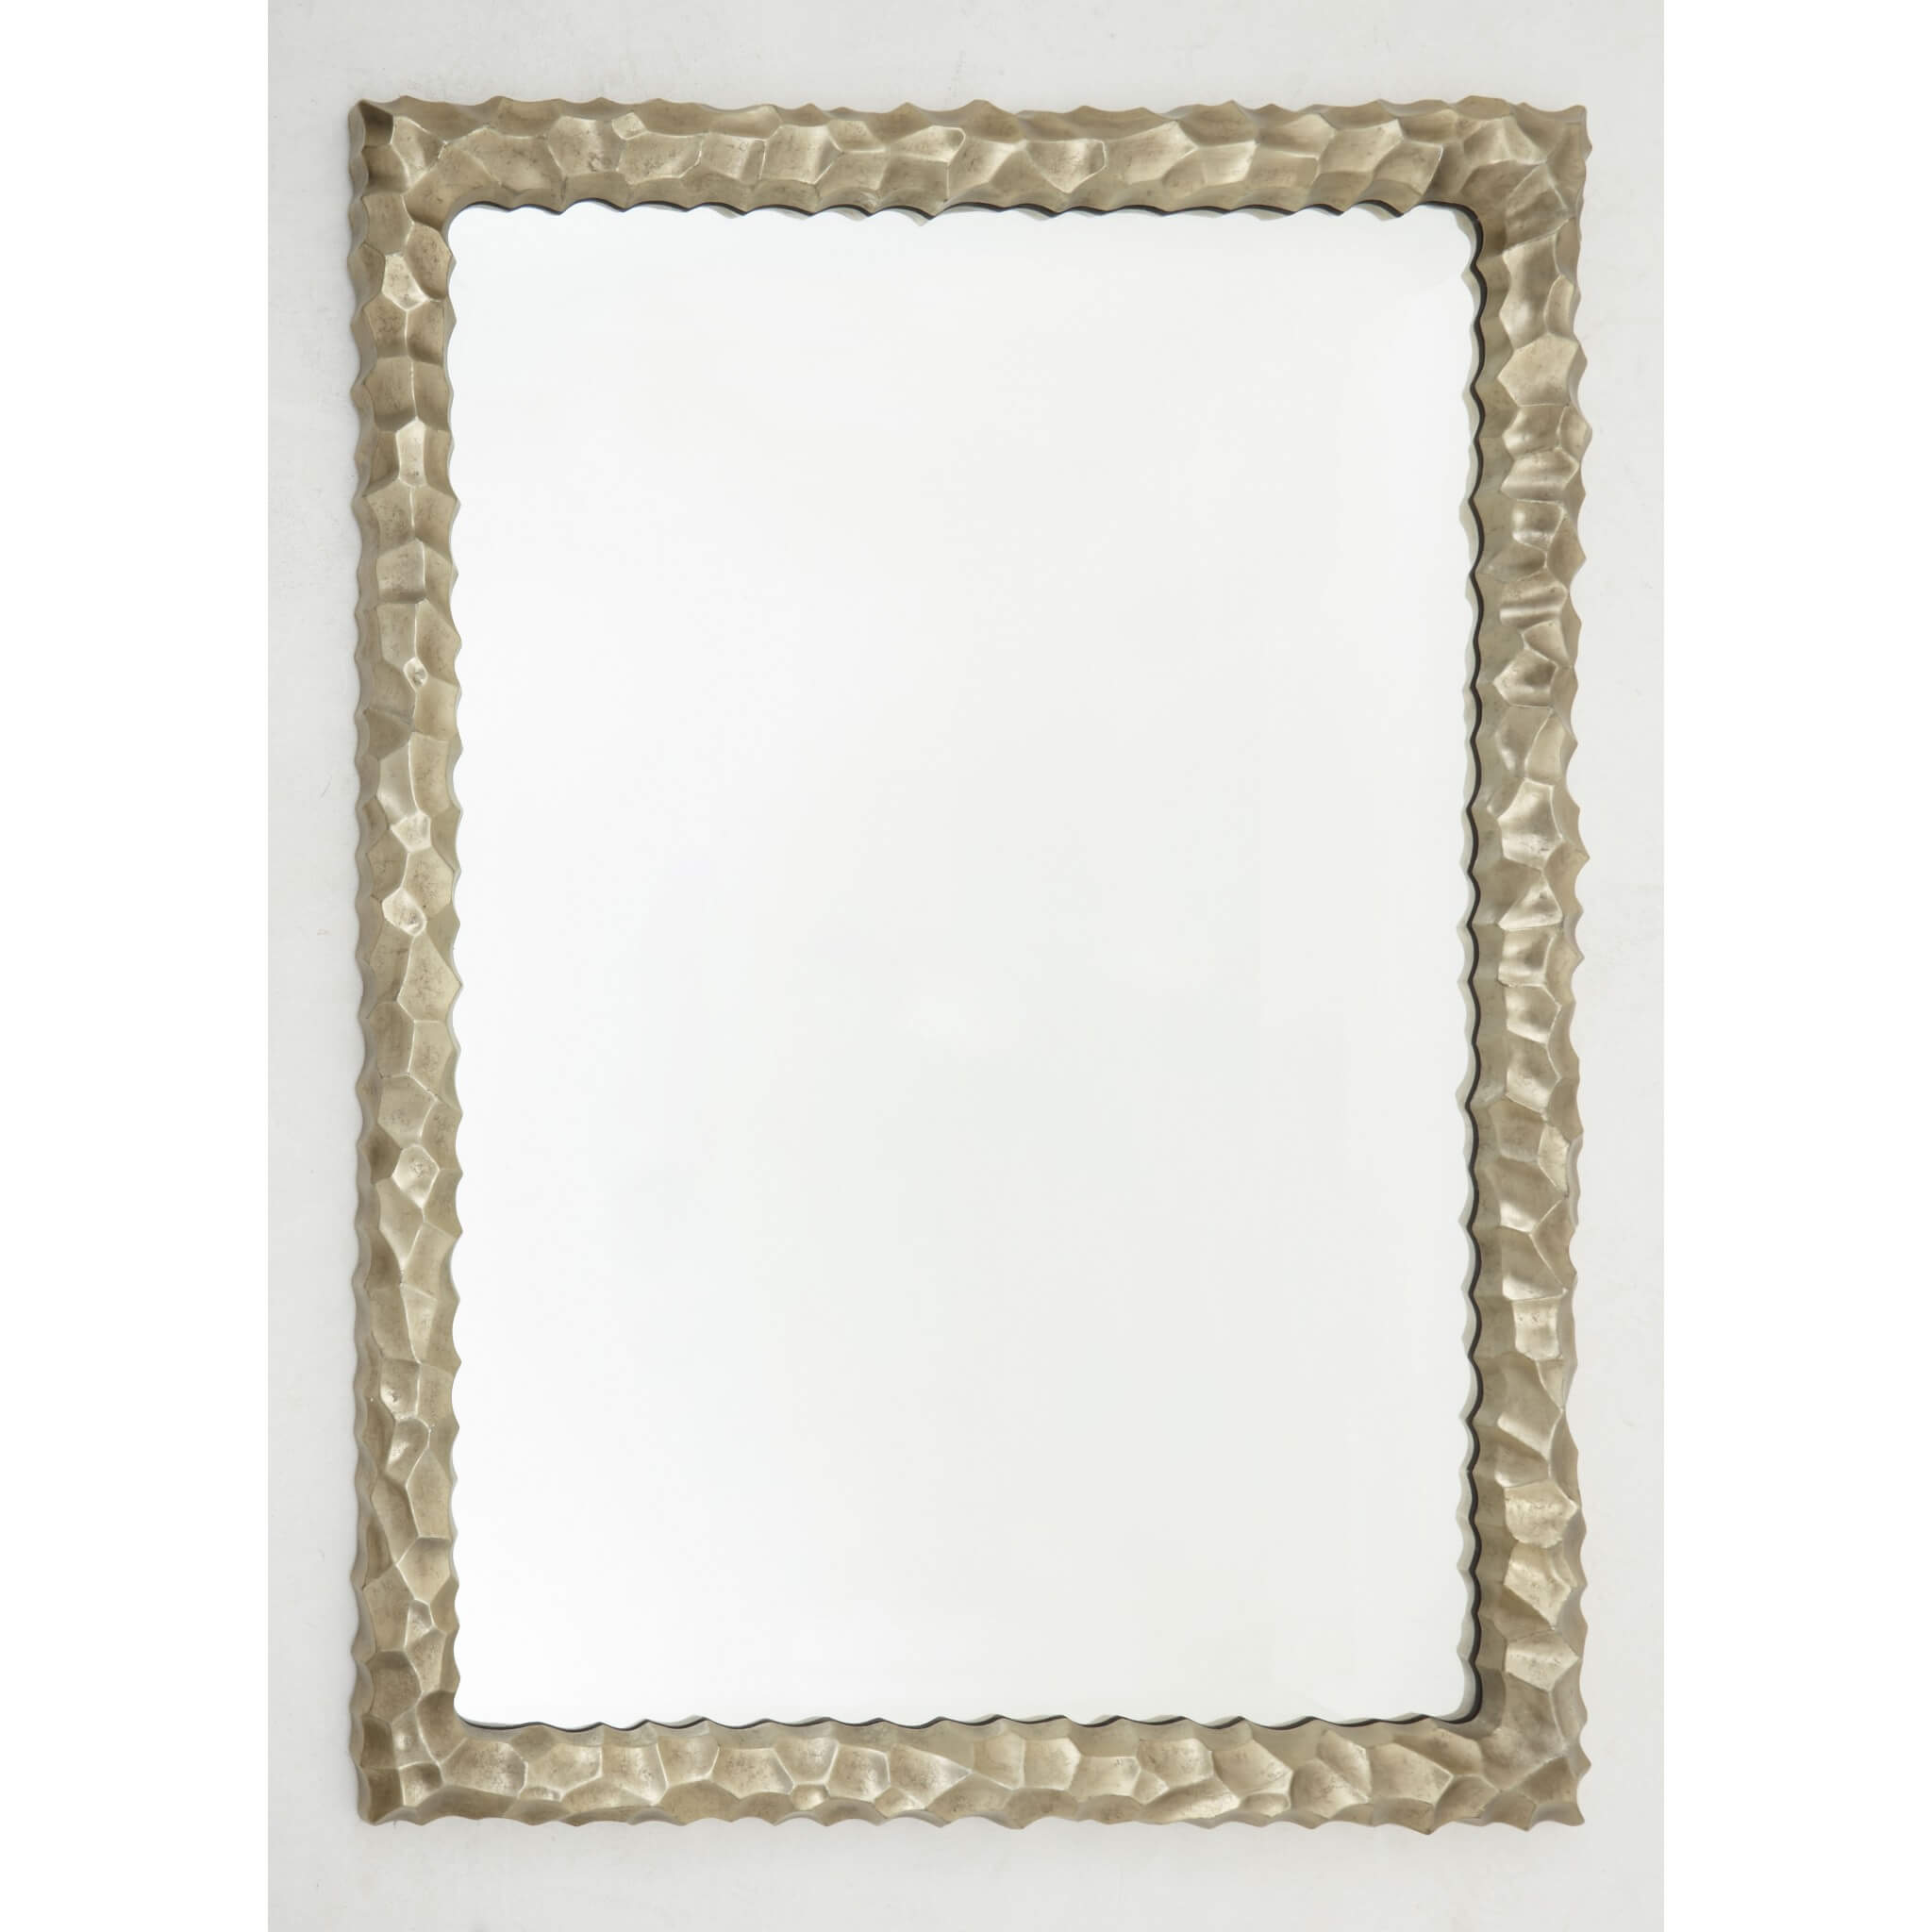 RV Astley Sasha Light Gold Leaf Rectangle Wall Mirror